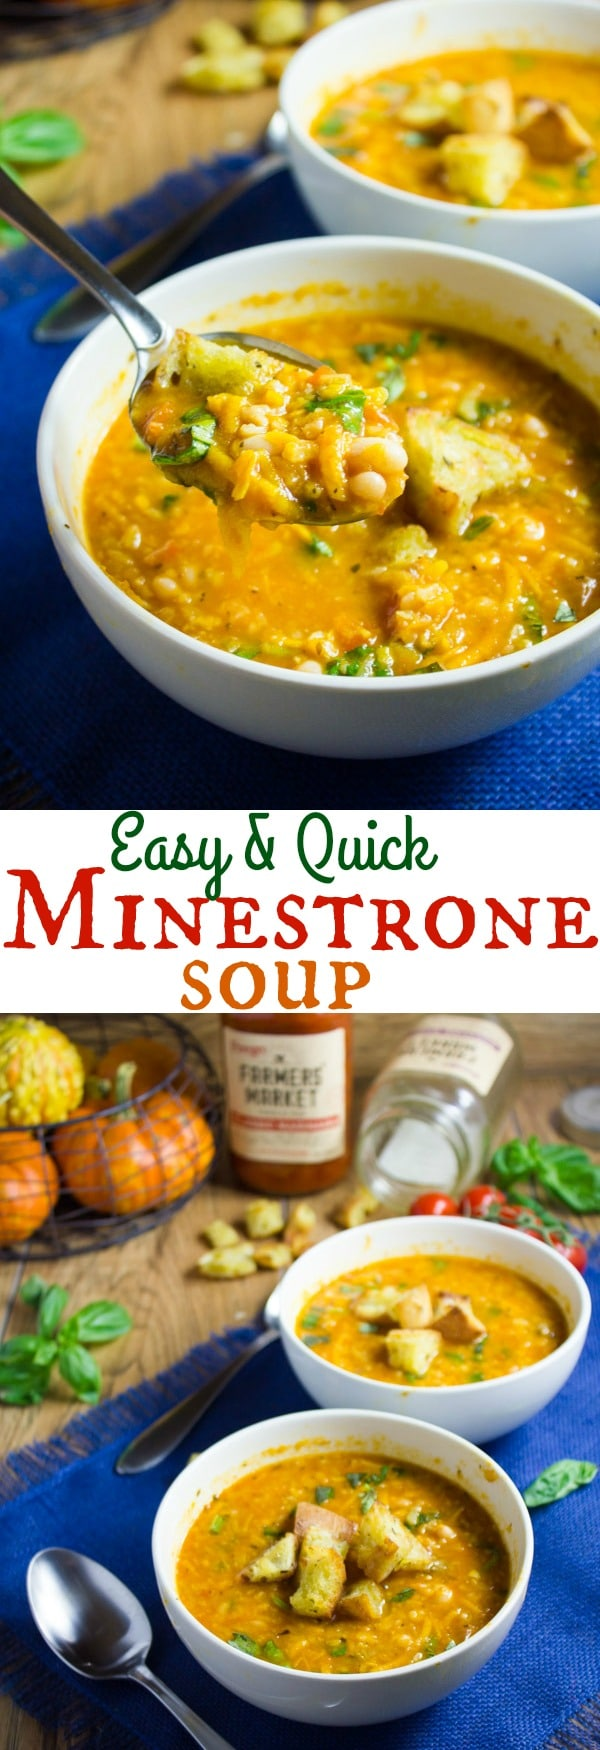 Veggie Minestrone Soup - this Veggie Minestrone is a seasonal spin on the classic Italian Minestrone using fall vegetables like butternut squash, cabbage, sweet potatoes and mushrooms. All veggies are shredded in a food processor allowing for this quick fall soup to be served in only 30 mins! #healthy, #easy, #vegetarian, #minestrone, #fall